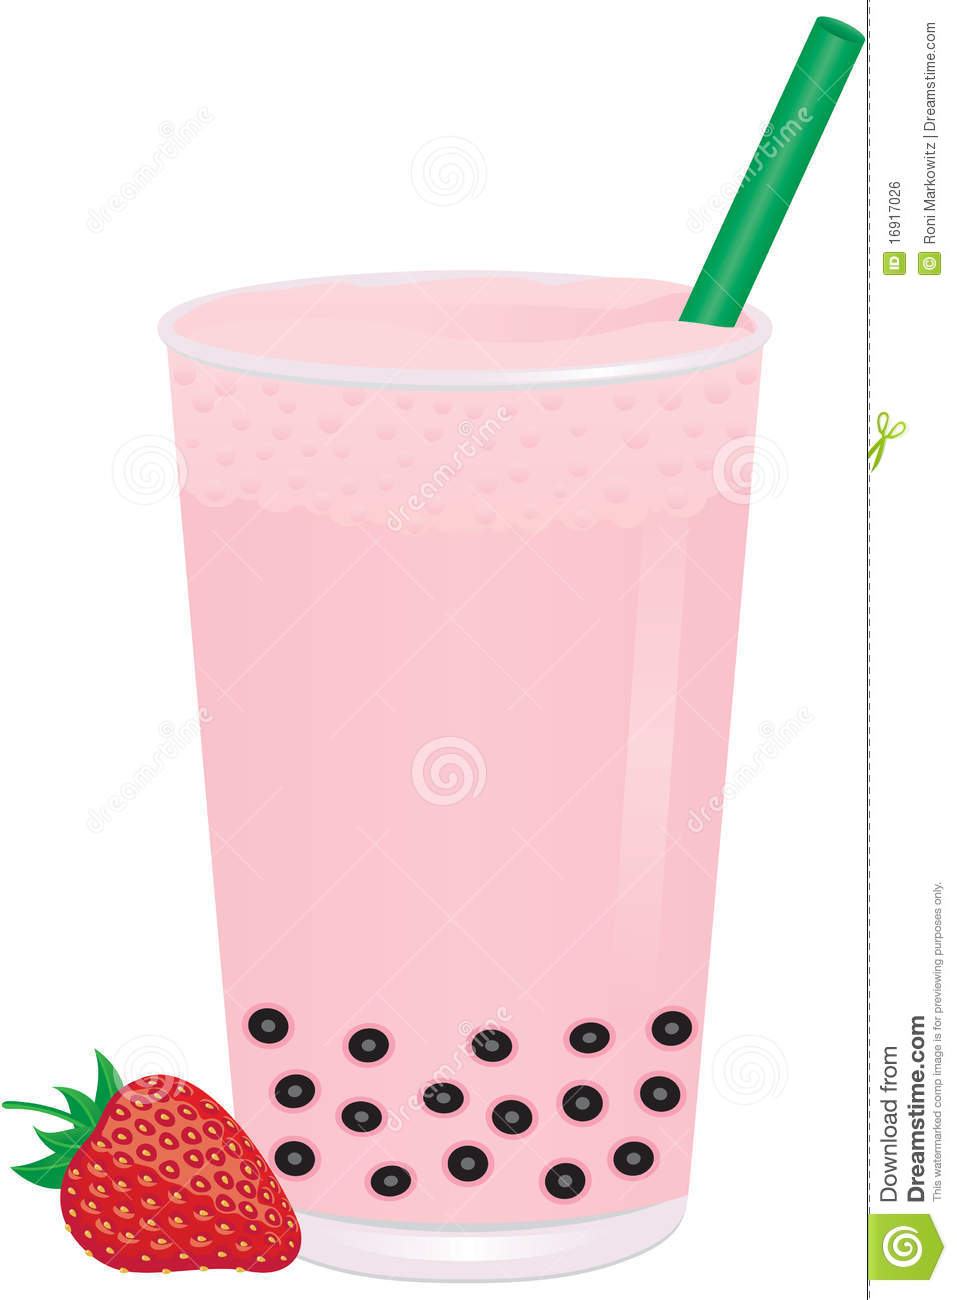 Bubble tea strawberry